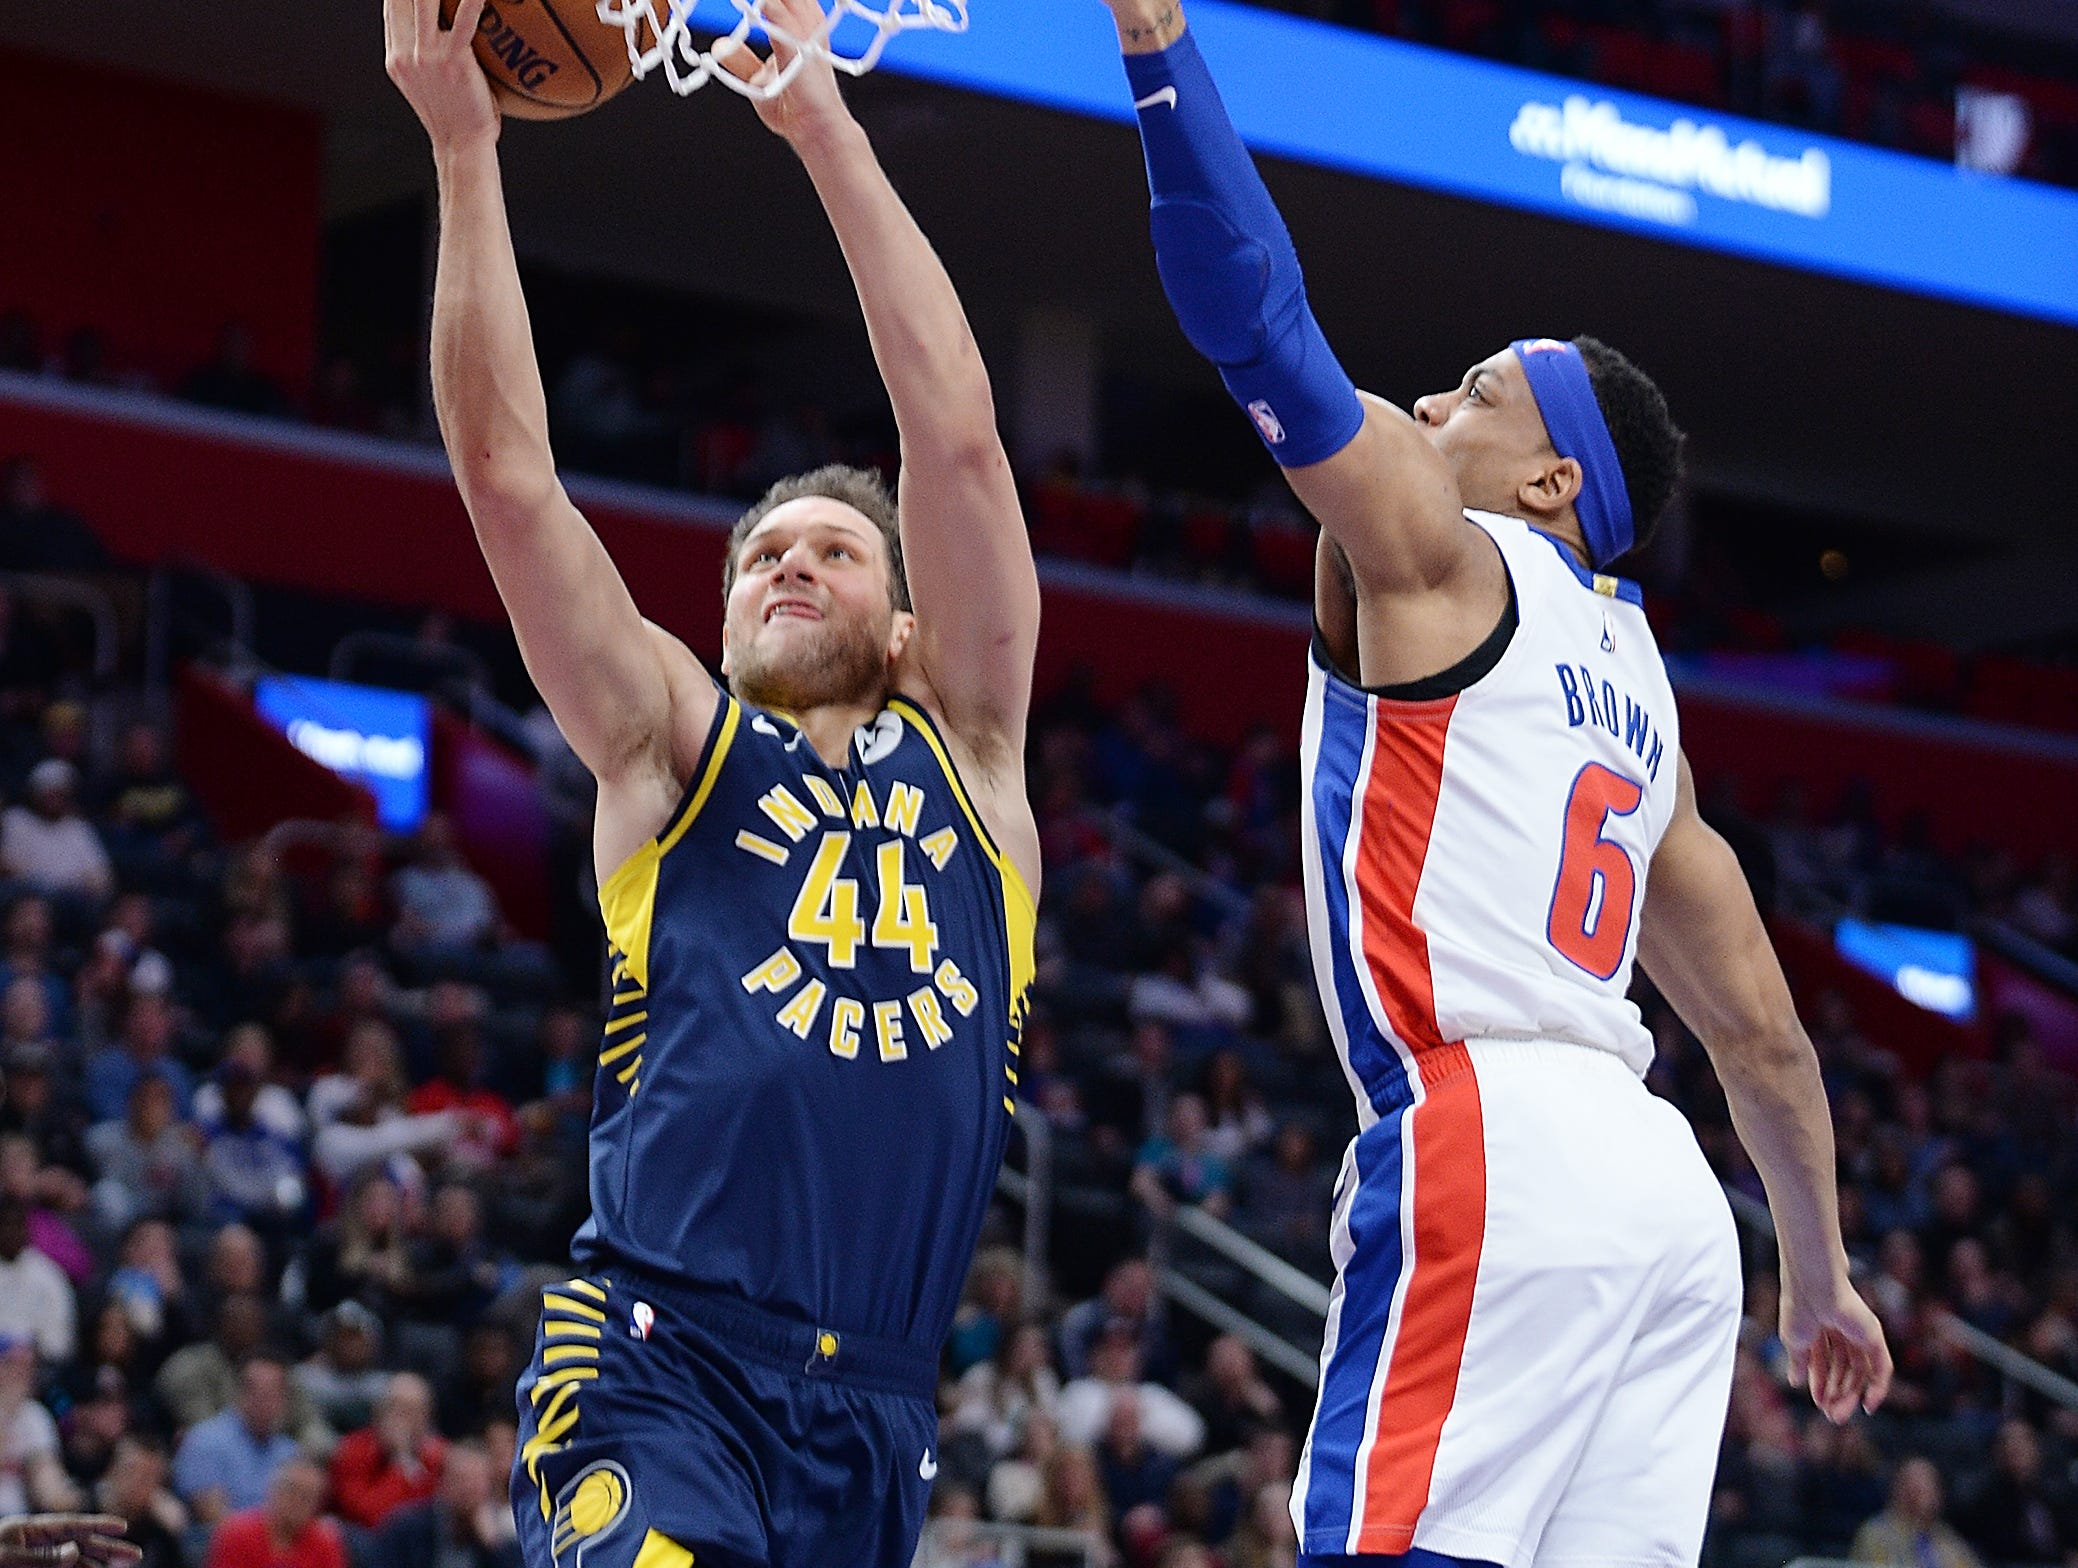 Pacers' Bojan Bogdanovic scores over Pistons' Bruce Brown in the third quarter.